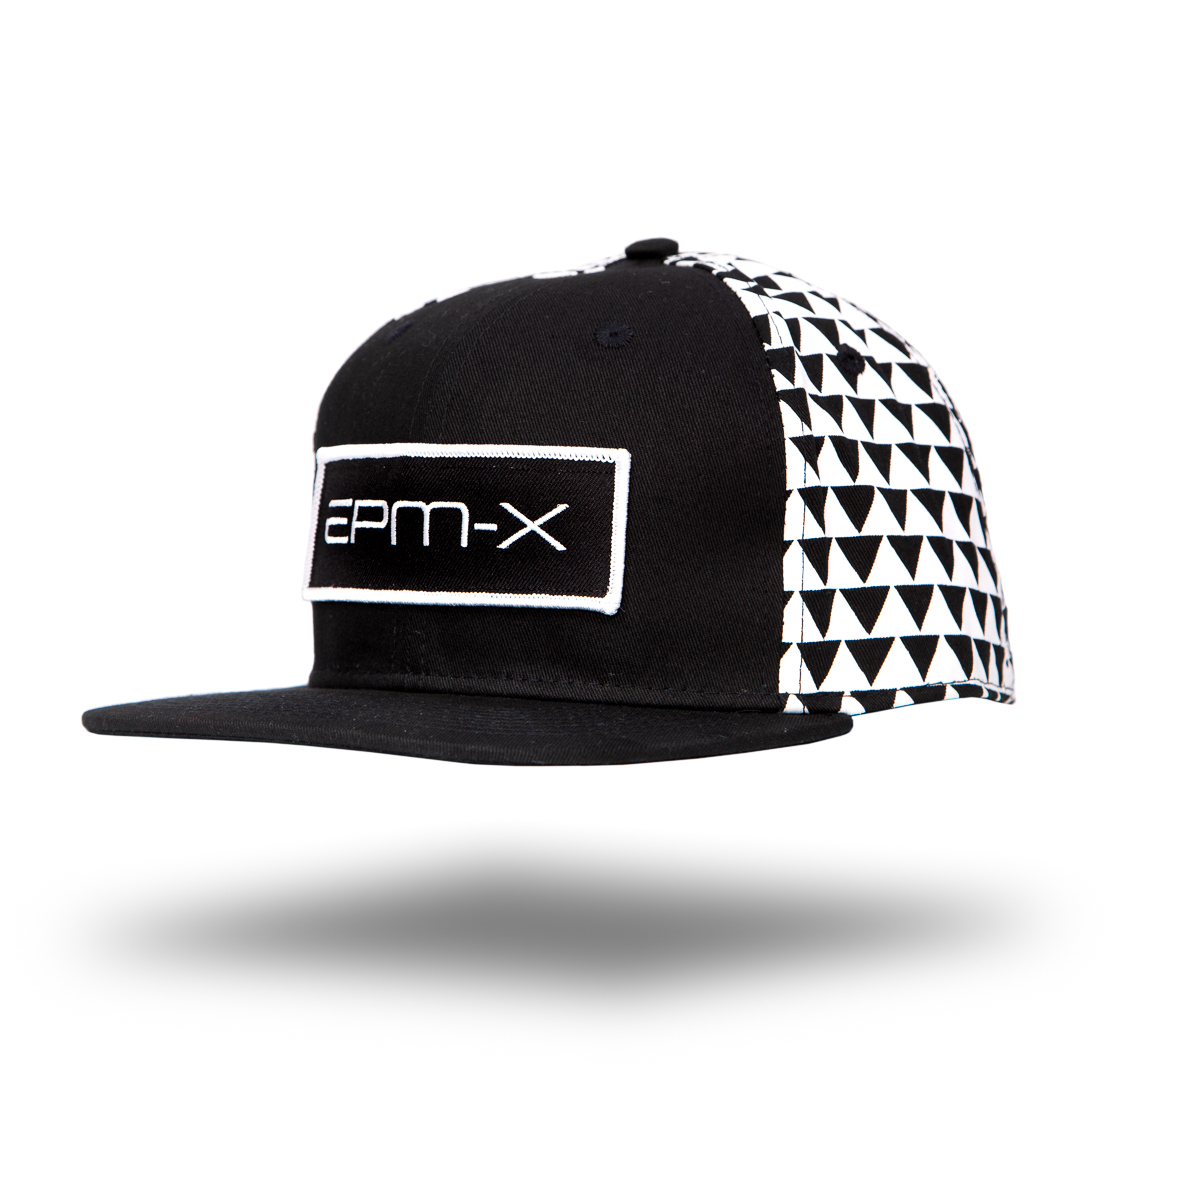 Eat Pray Maui's EPM-X Hat floating style with drop shadow - black